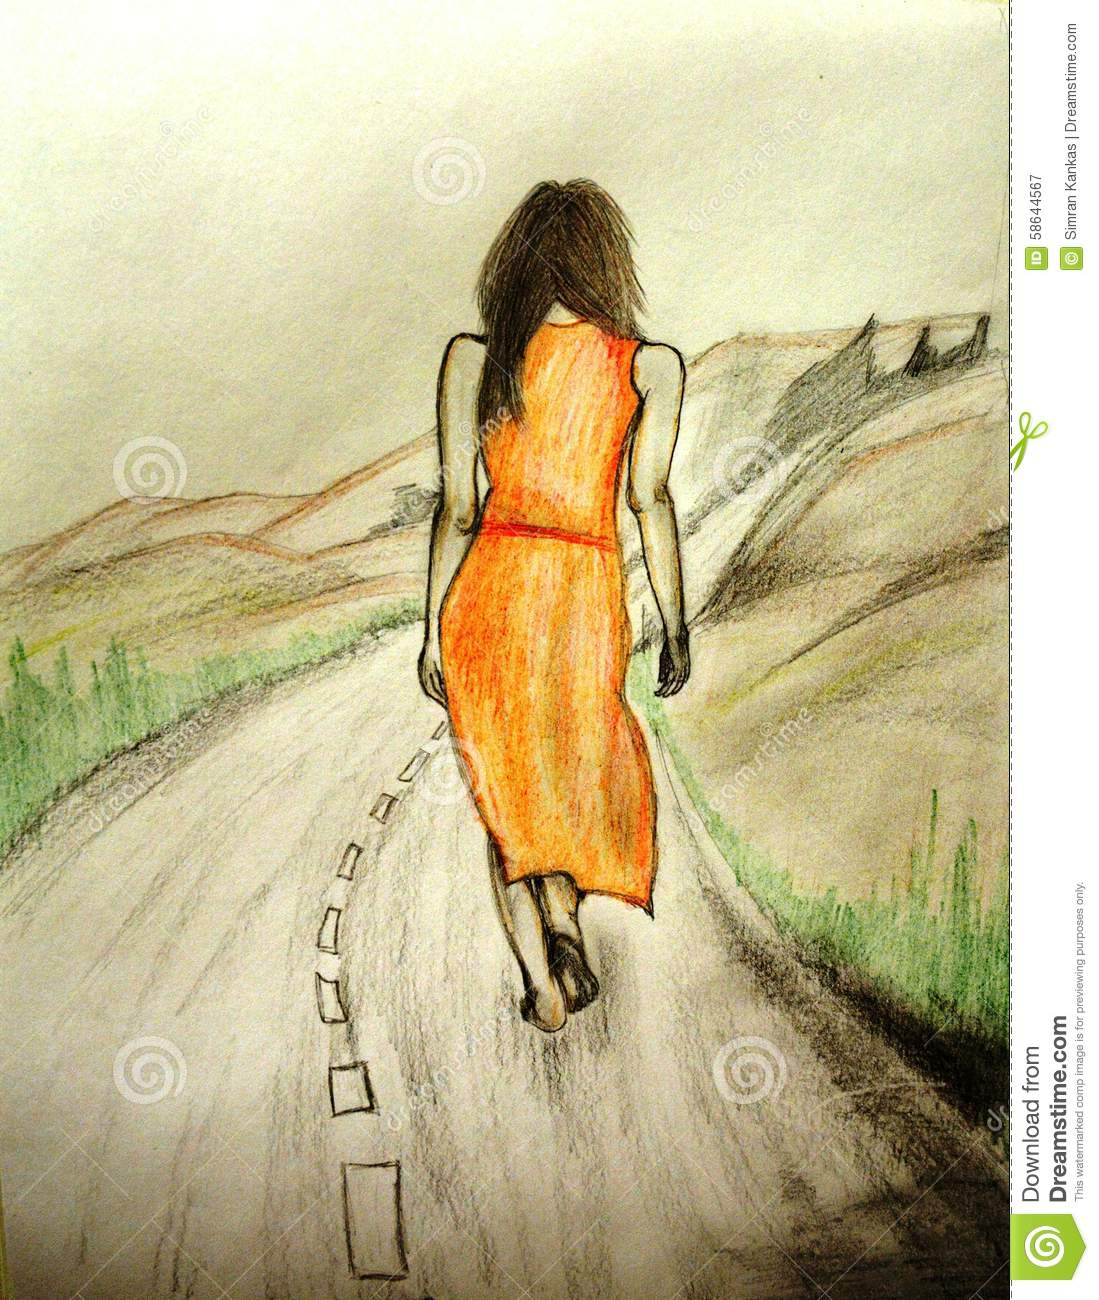 Sketch of a woman walking alone